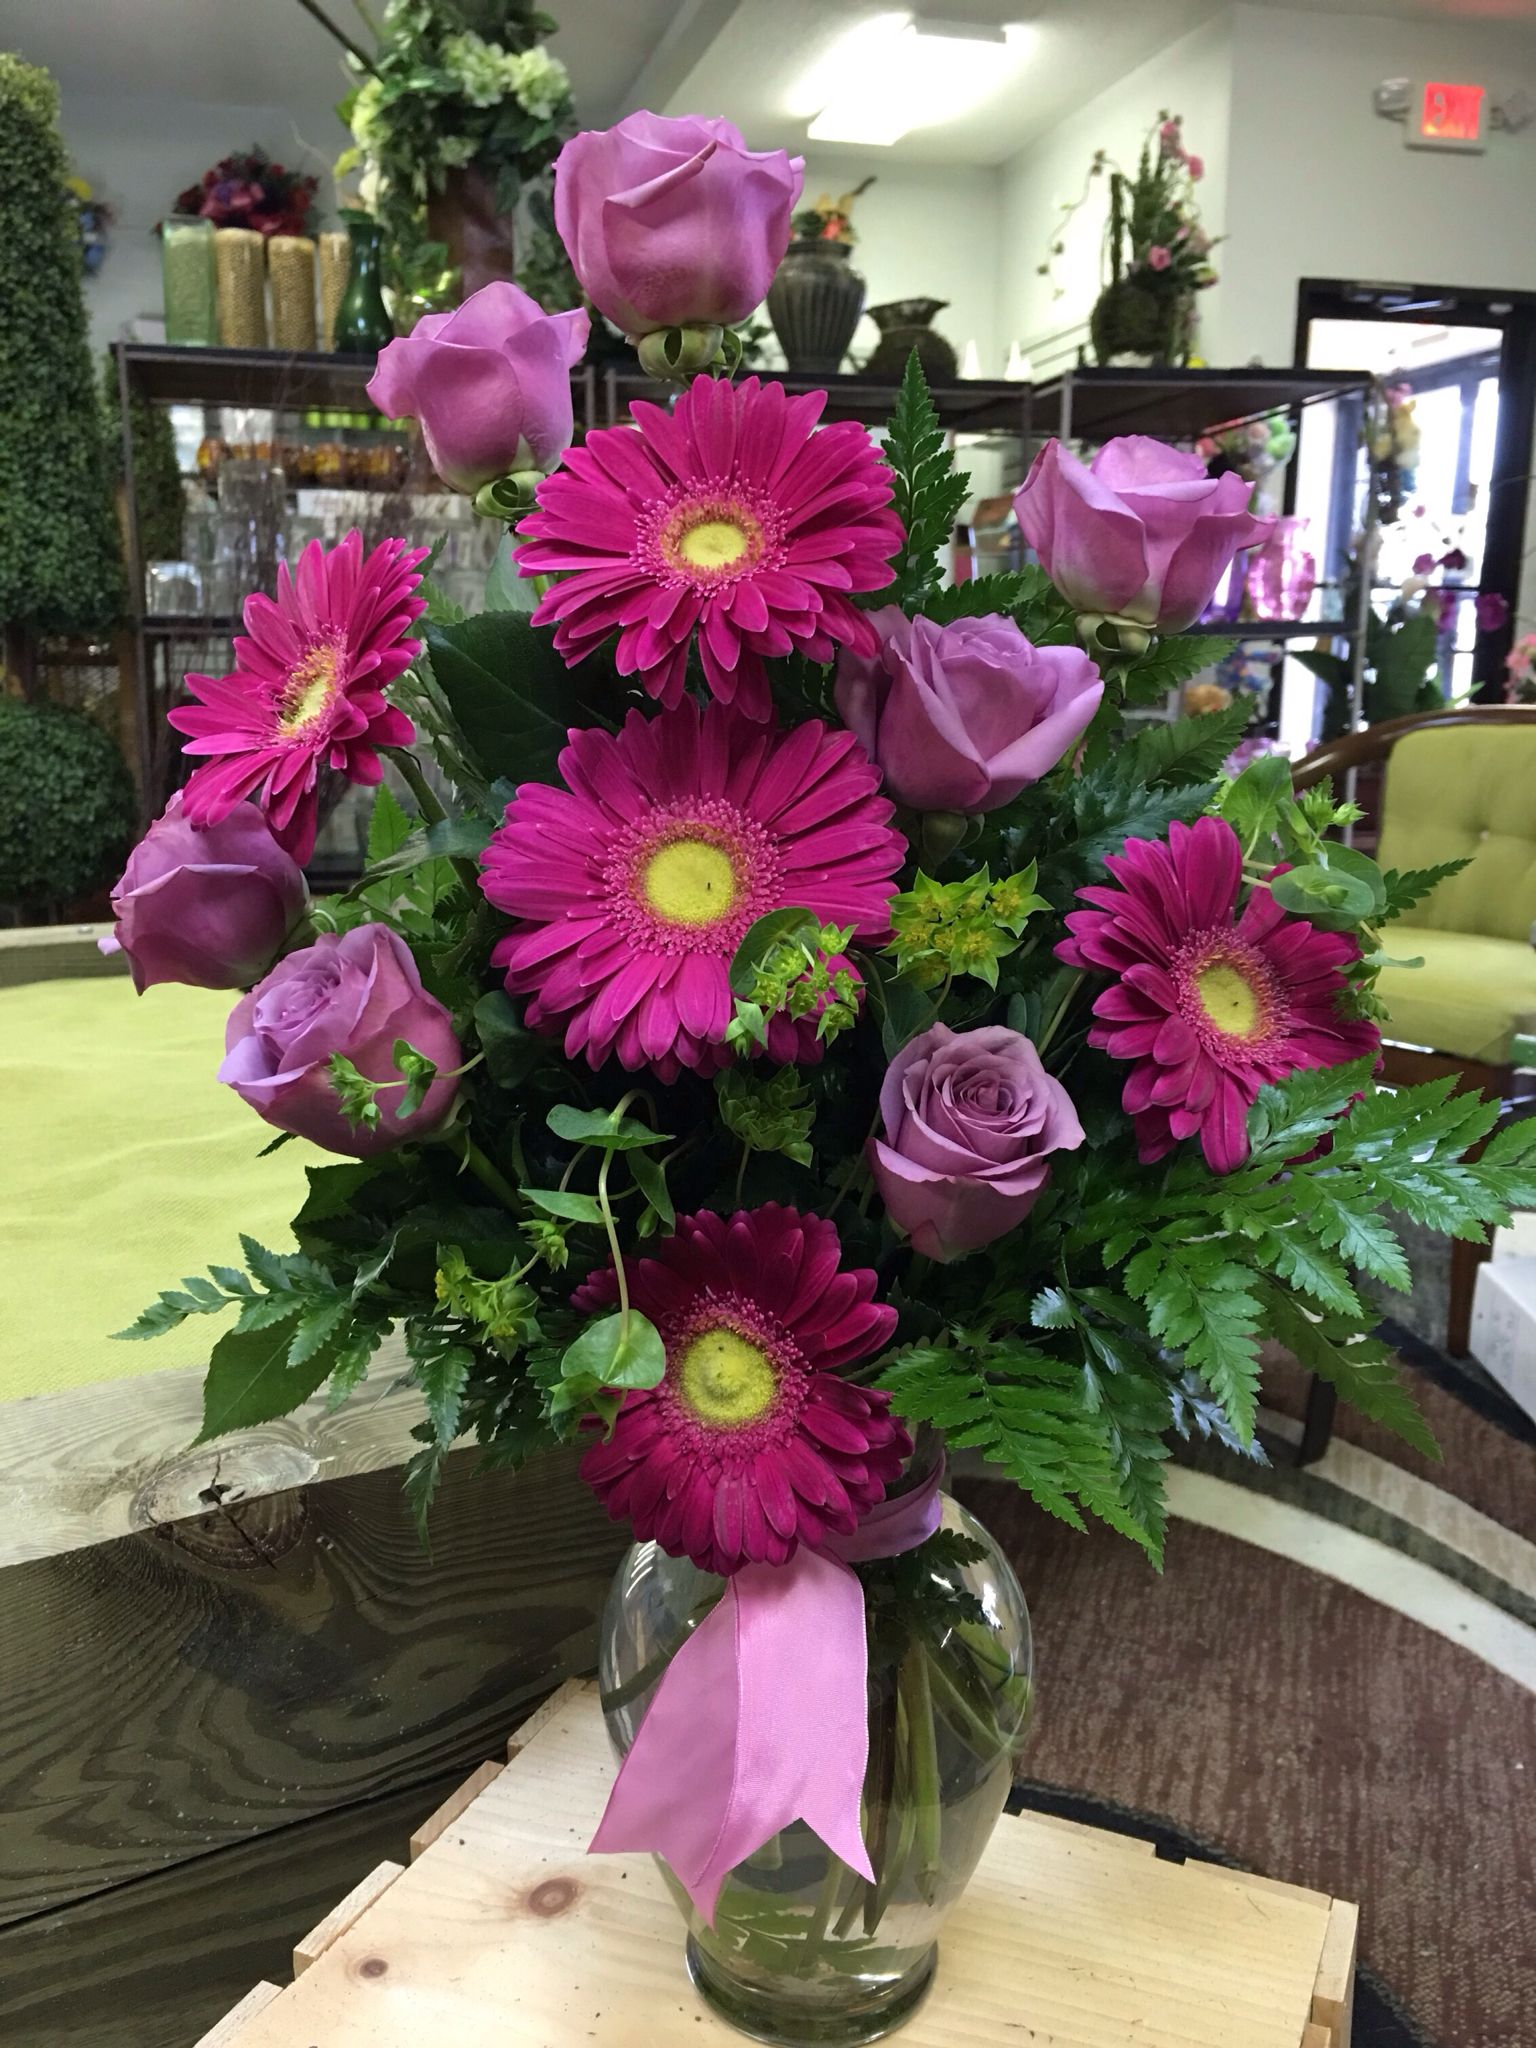 Hopeless RomanticValentine's Day Special!!! Hartman's